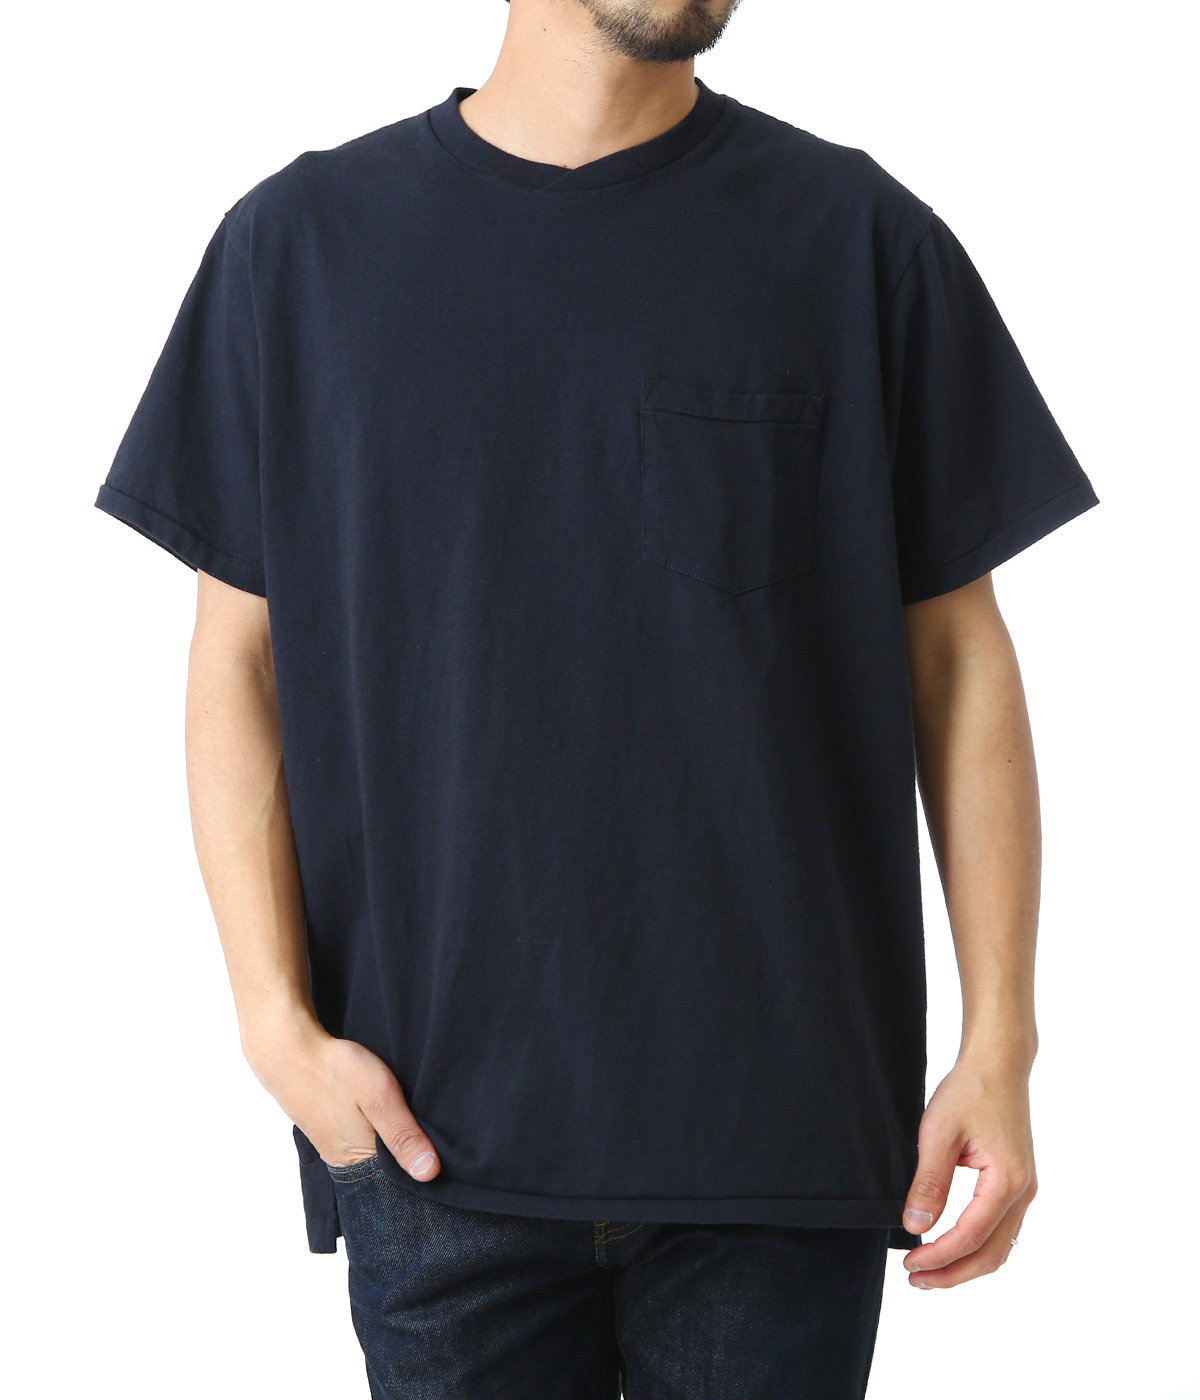 Crossover Neck Pocket Tee